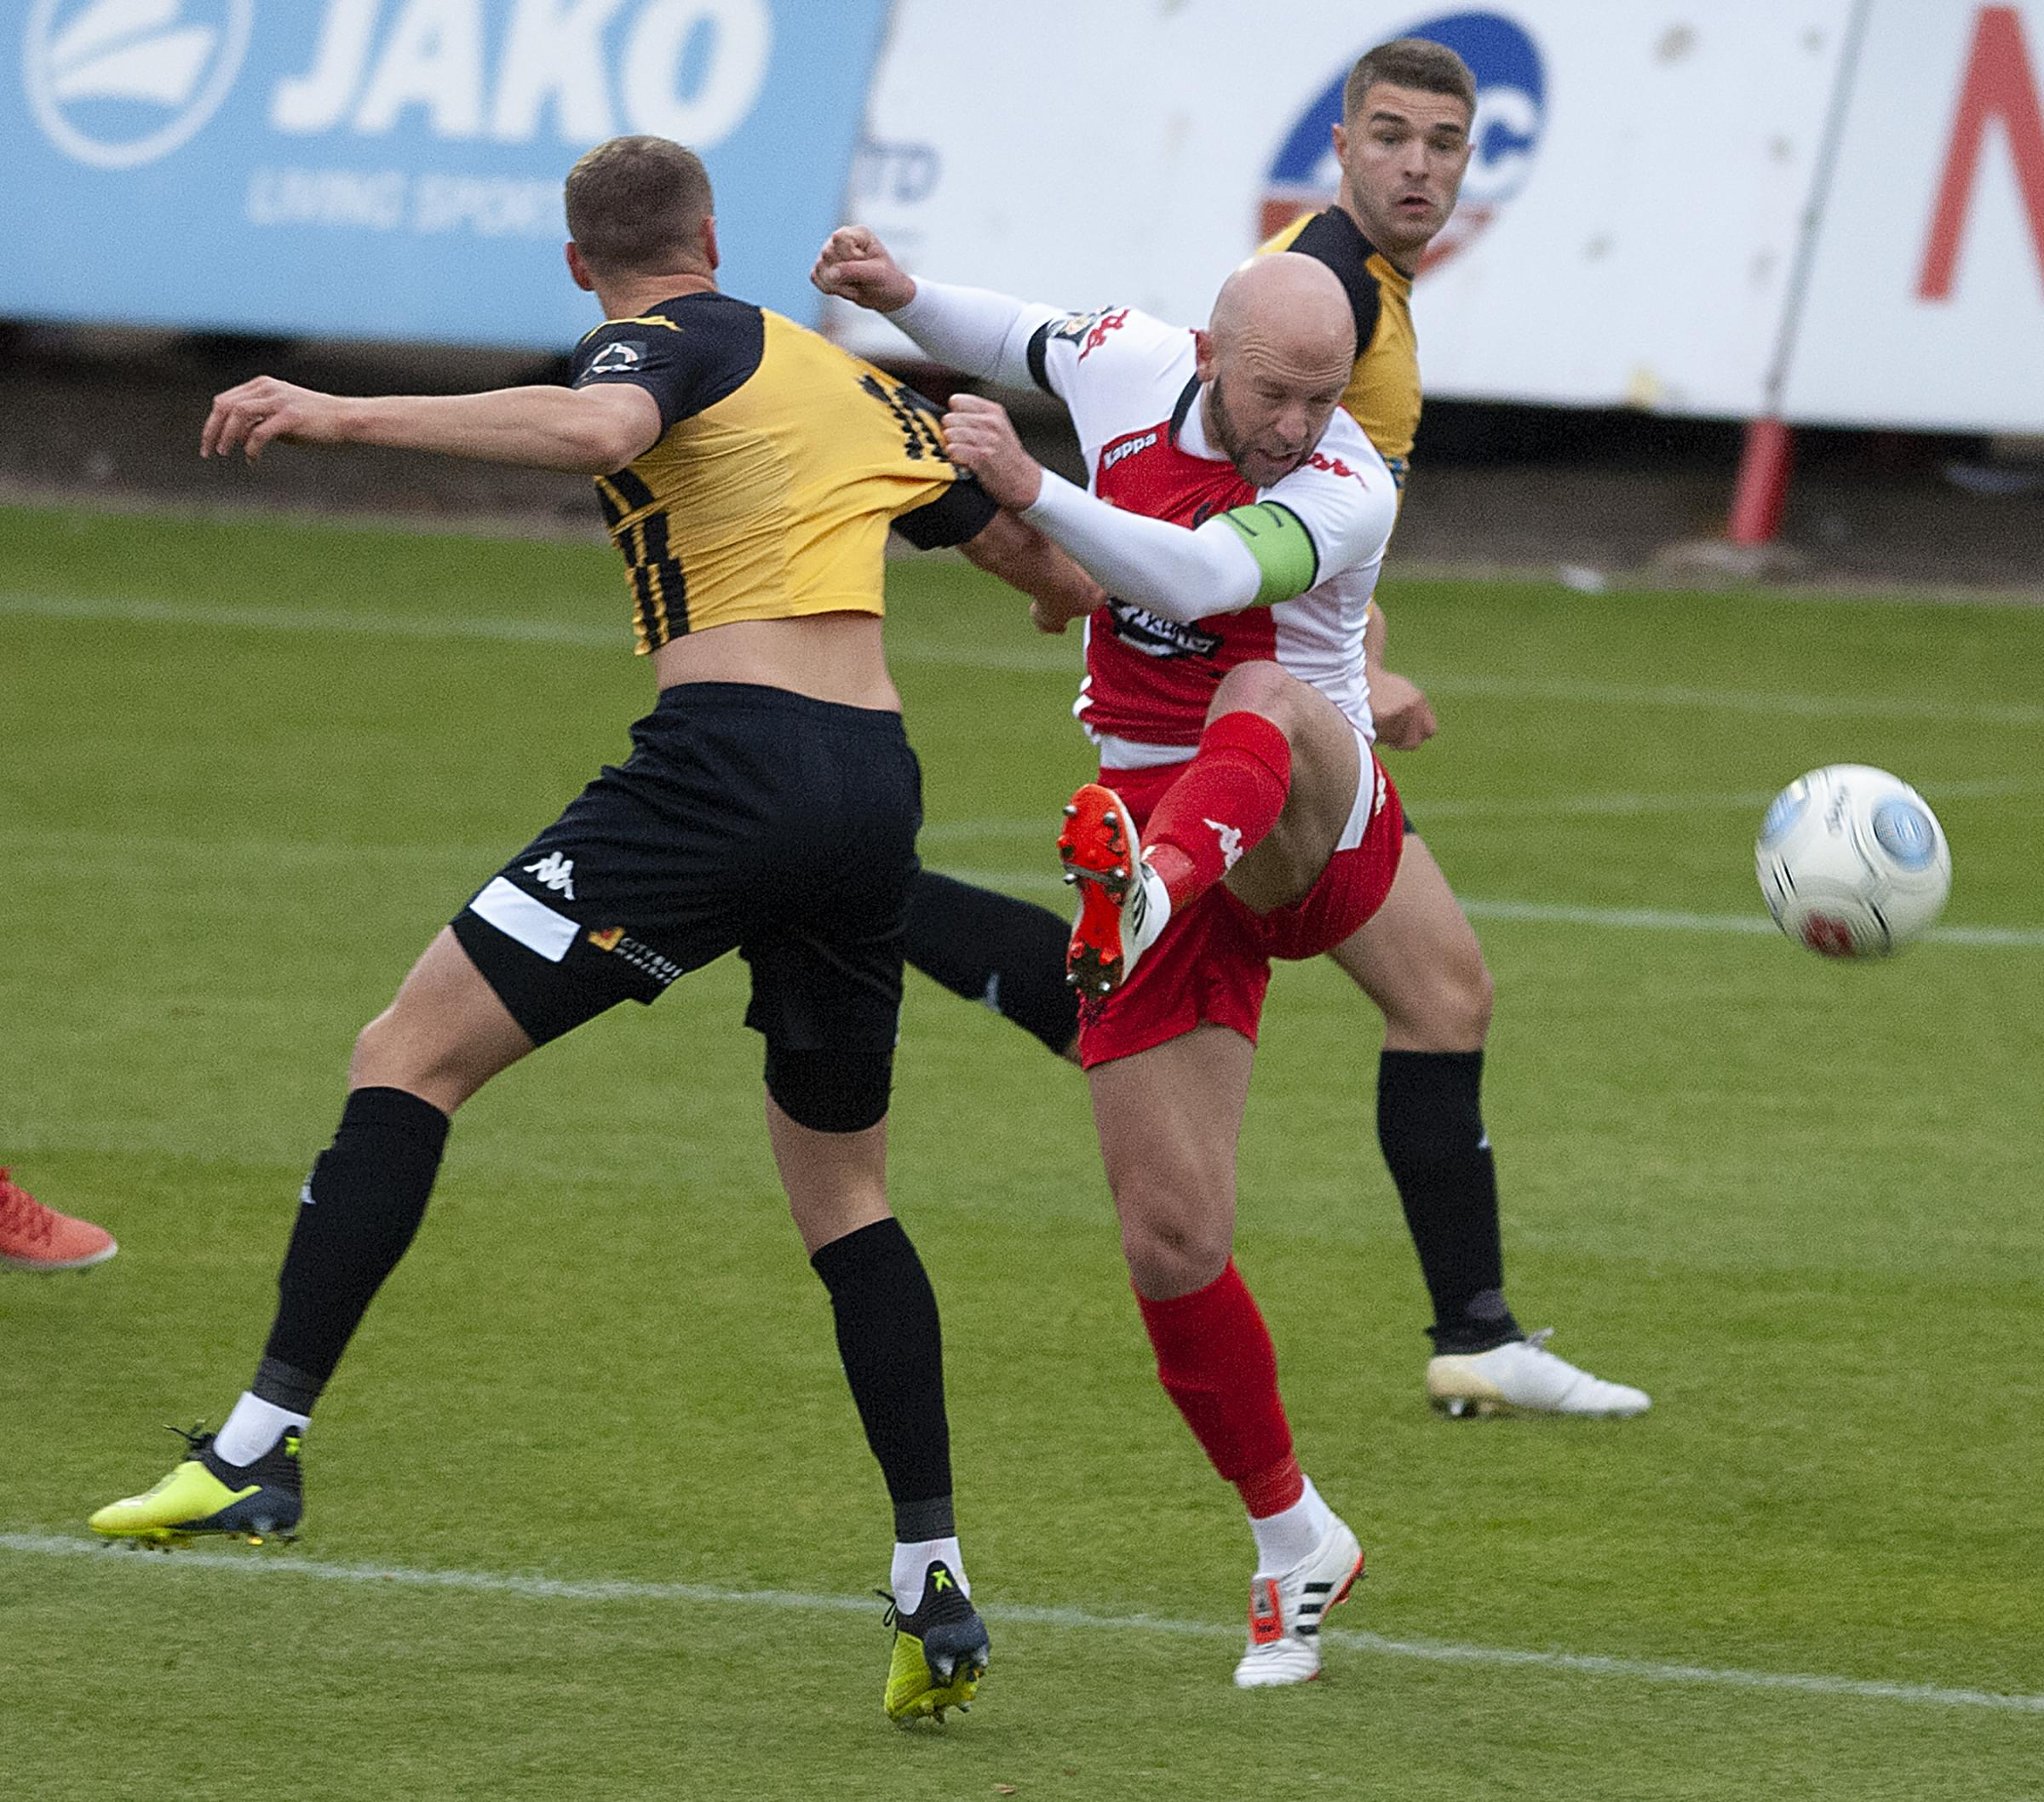 Kidderminster's Jimmy O'Connor challenges Southport's Brad Bauress. Photo by Paul France.